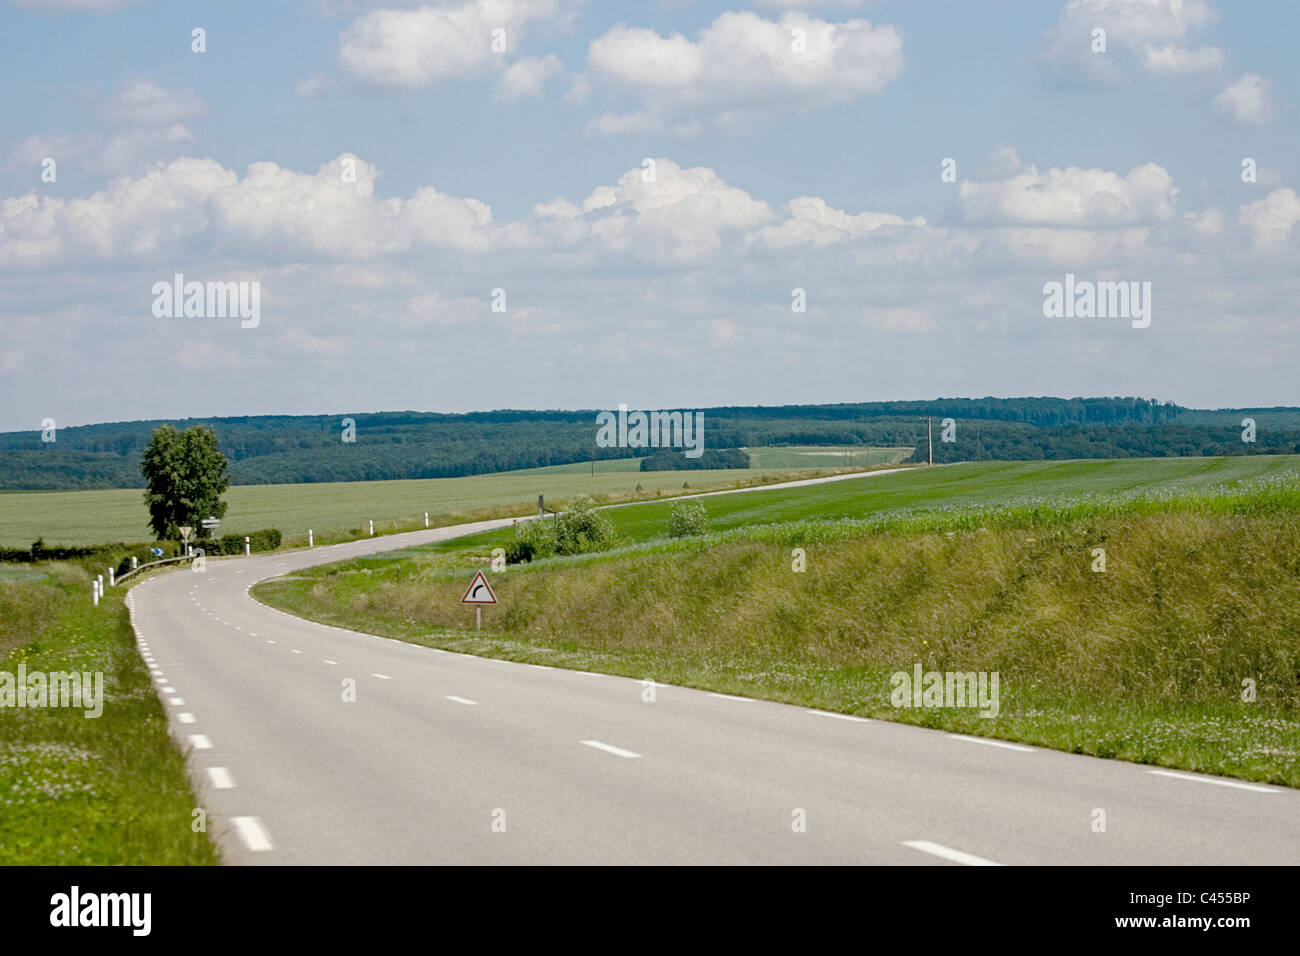 France, Giverny, Dieppe, Empty road through landscape Photo Stock